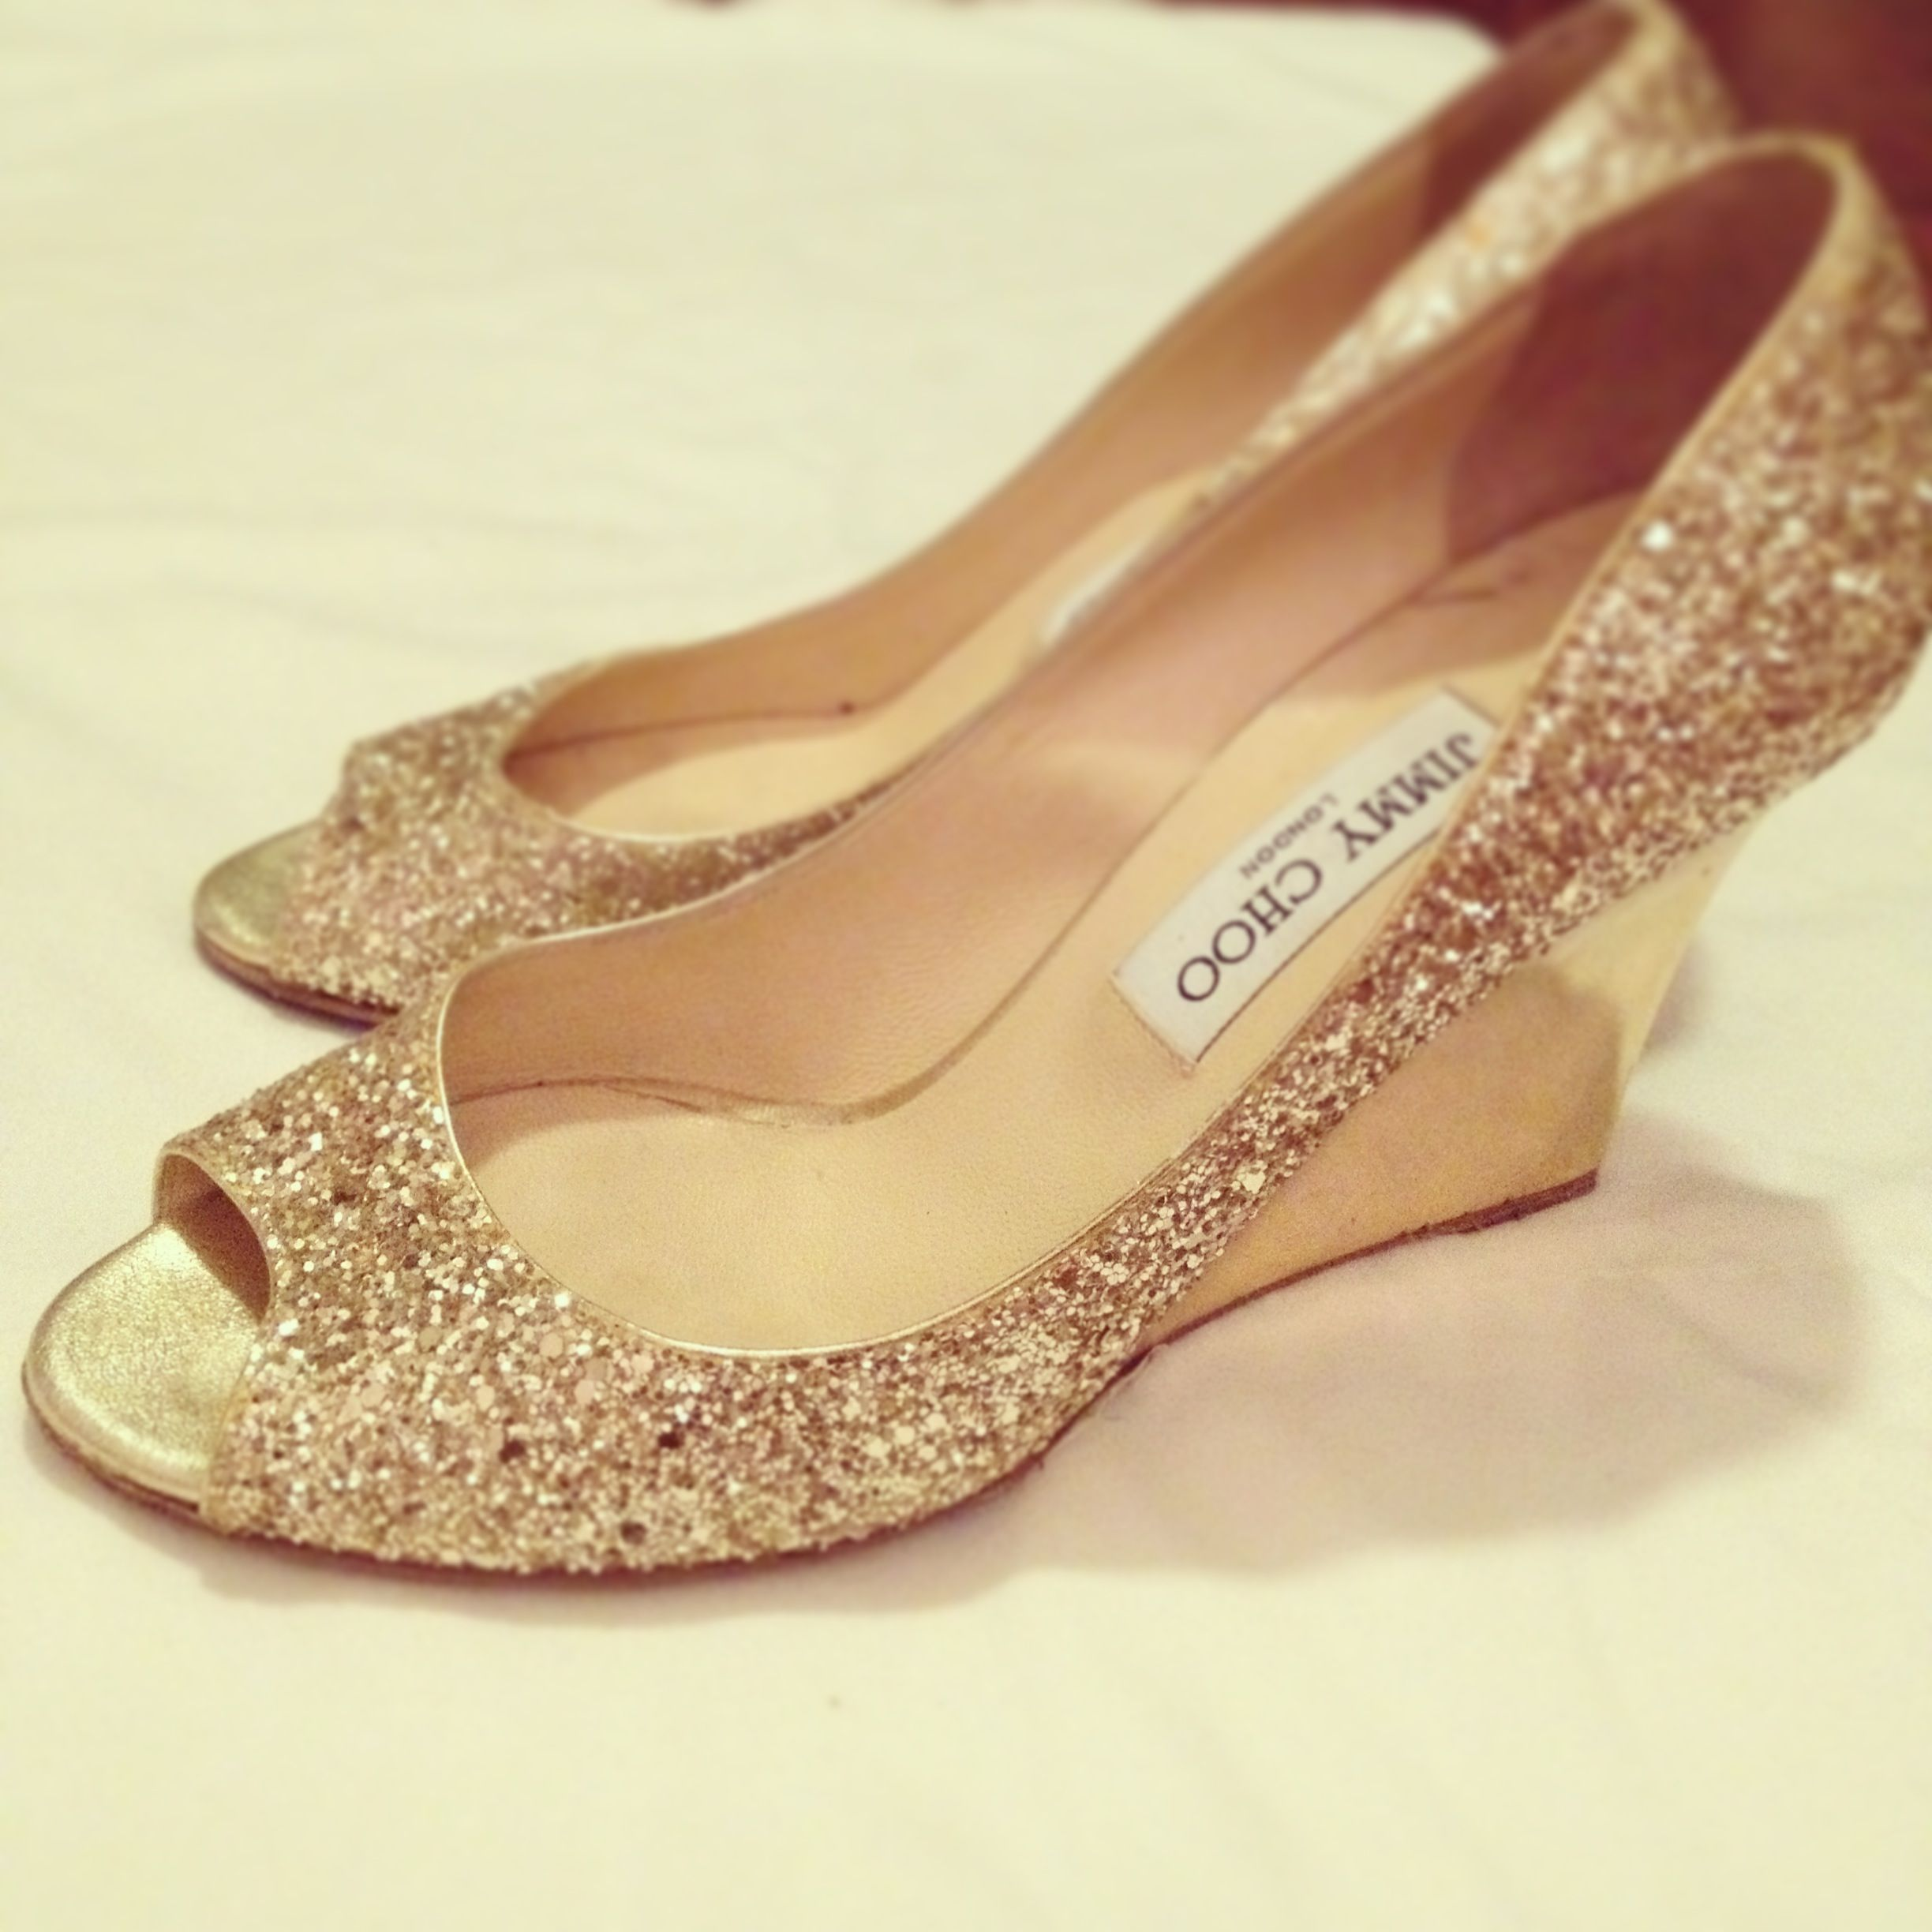 Jimmy Choos Shoes For Women With Big Feet